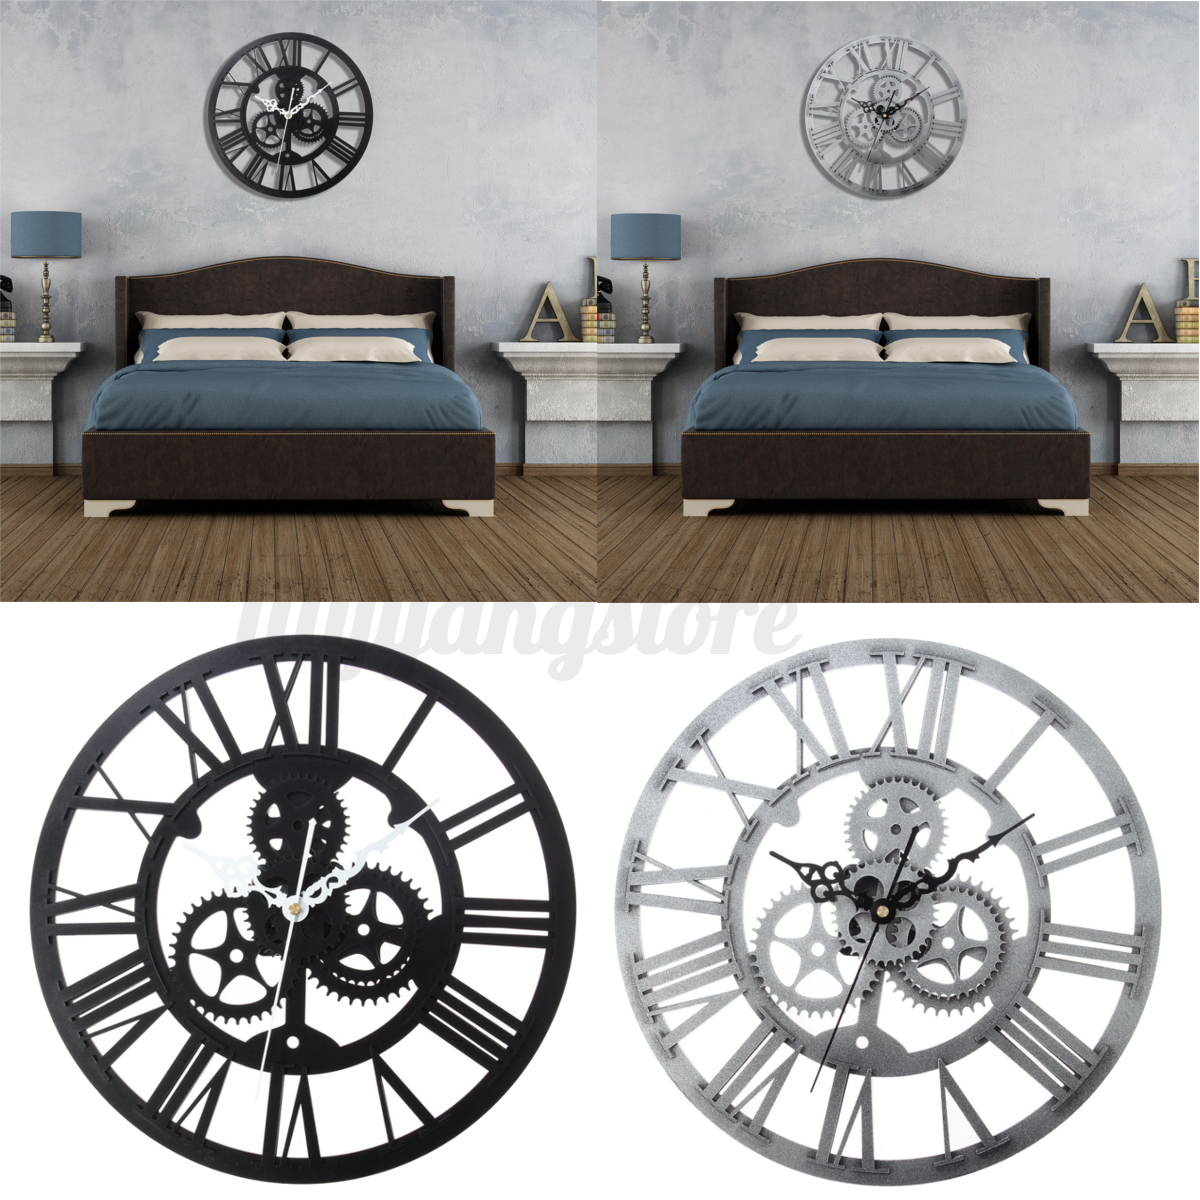 Modern Clock Large Round Black Silver Wall Vintage Home